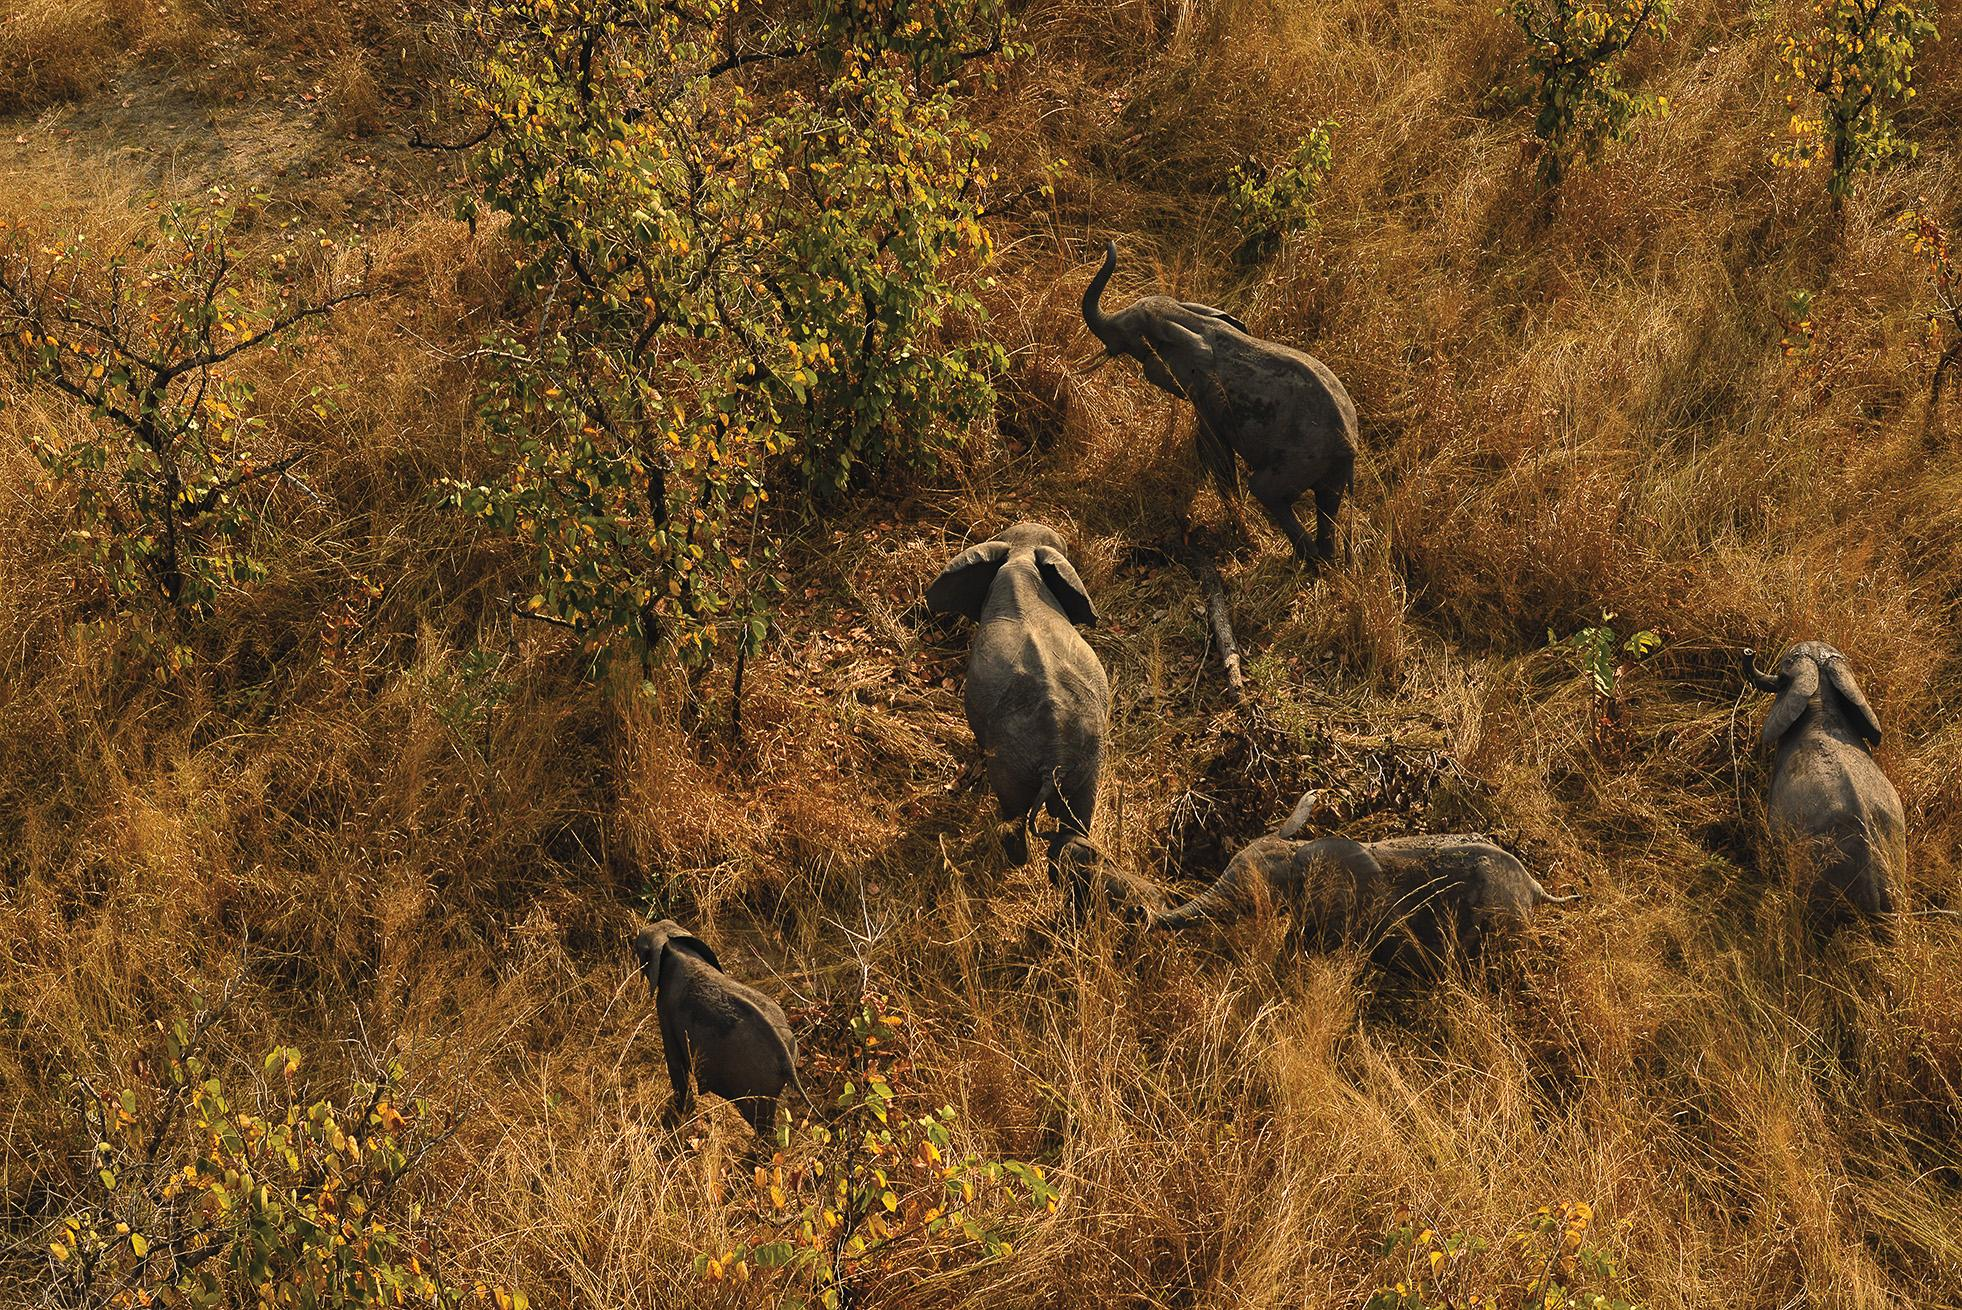 Elephants at Congo's Garamba